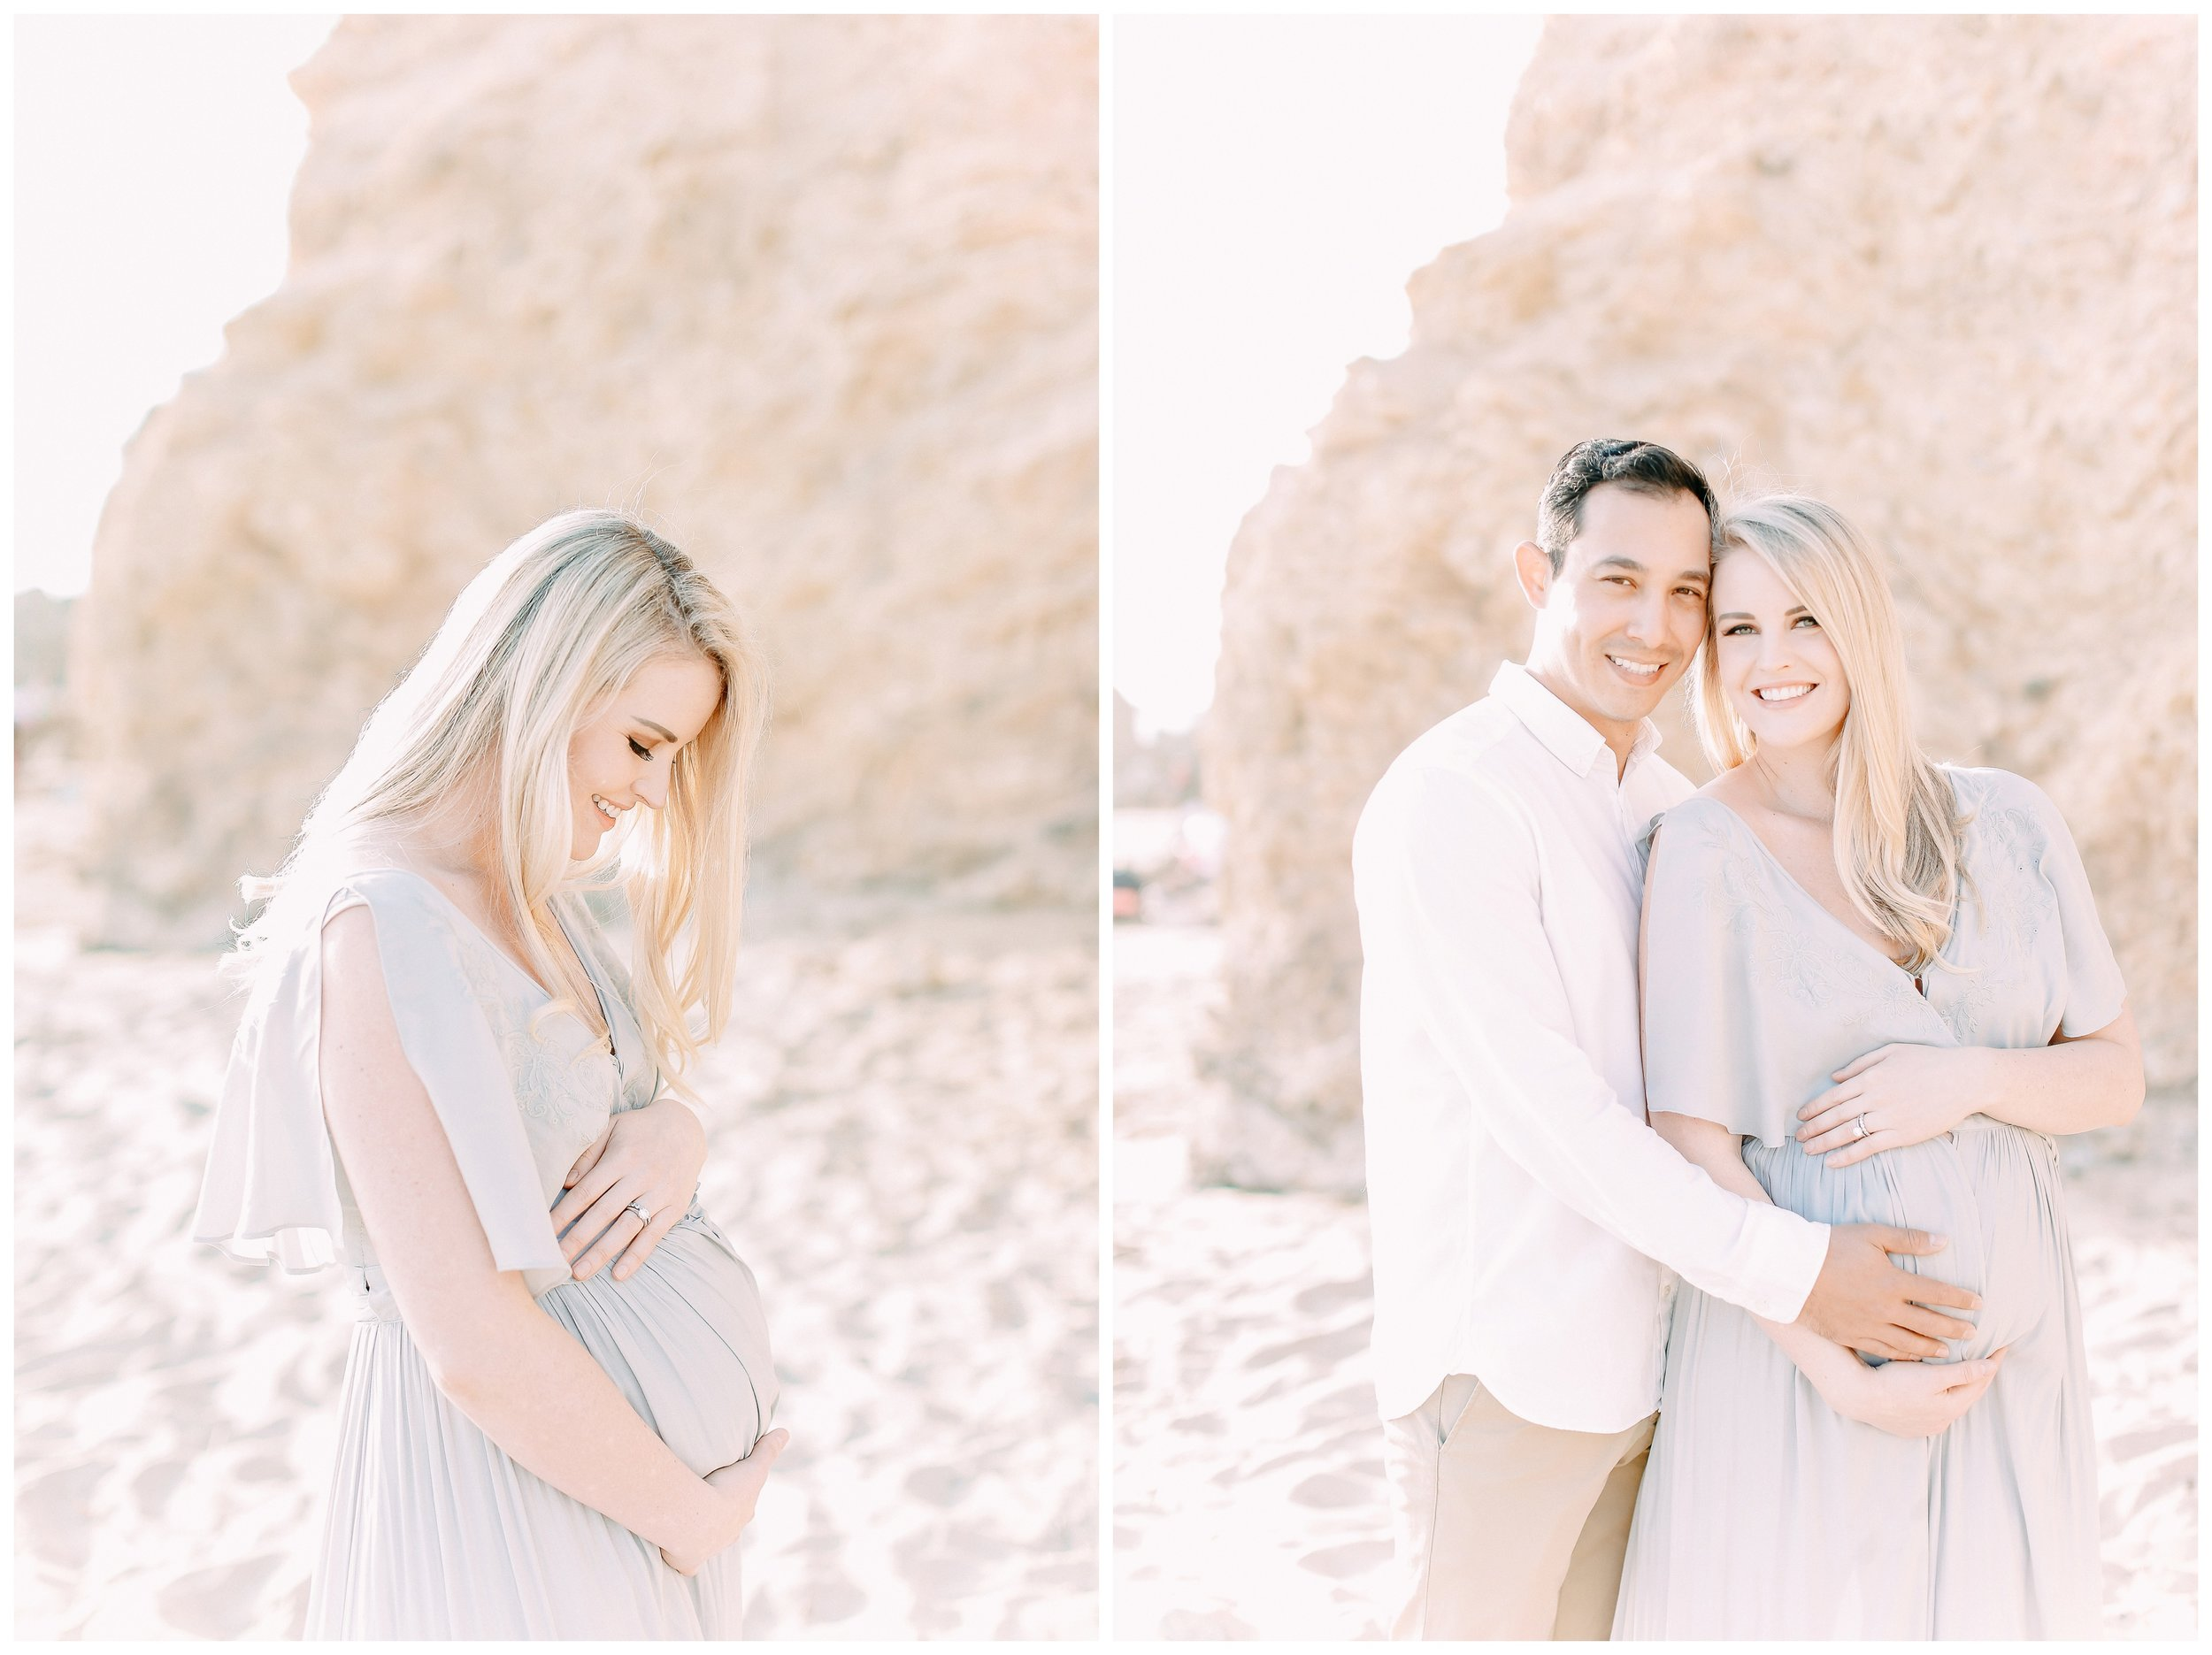 Little_Corona_Beach_Maternity_Session_Orange_county_family_photographer_cori_kleckner_photography_laguna_beach_family_session_0718.jpg